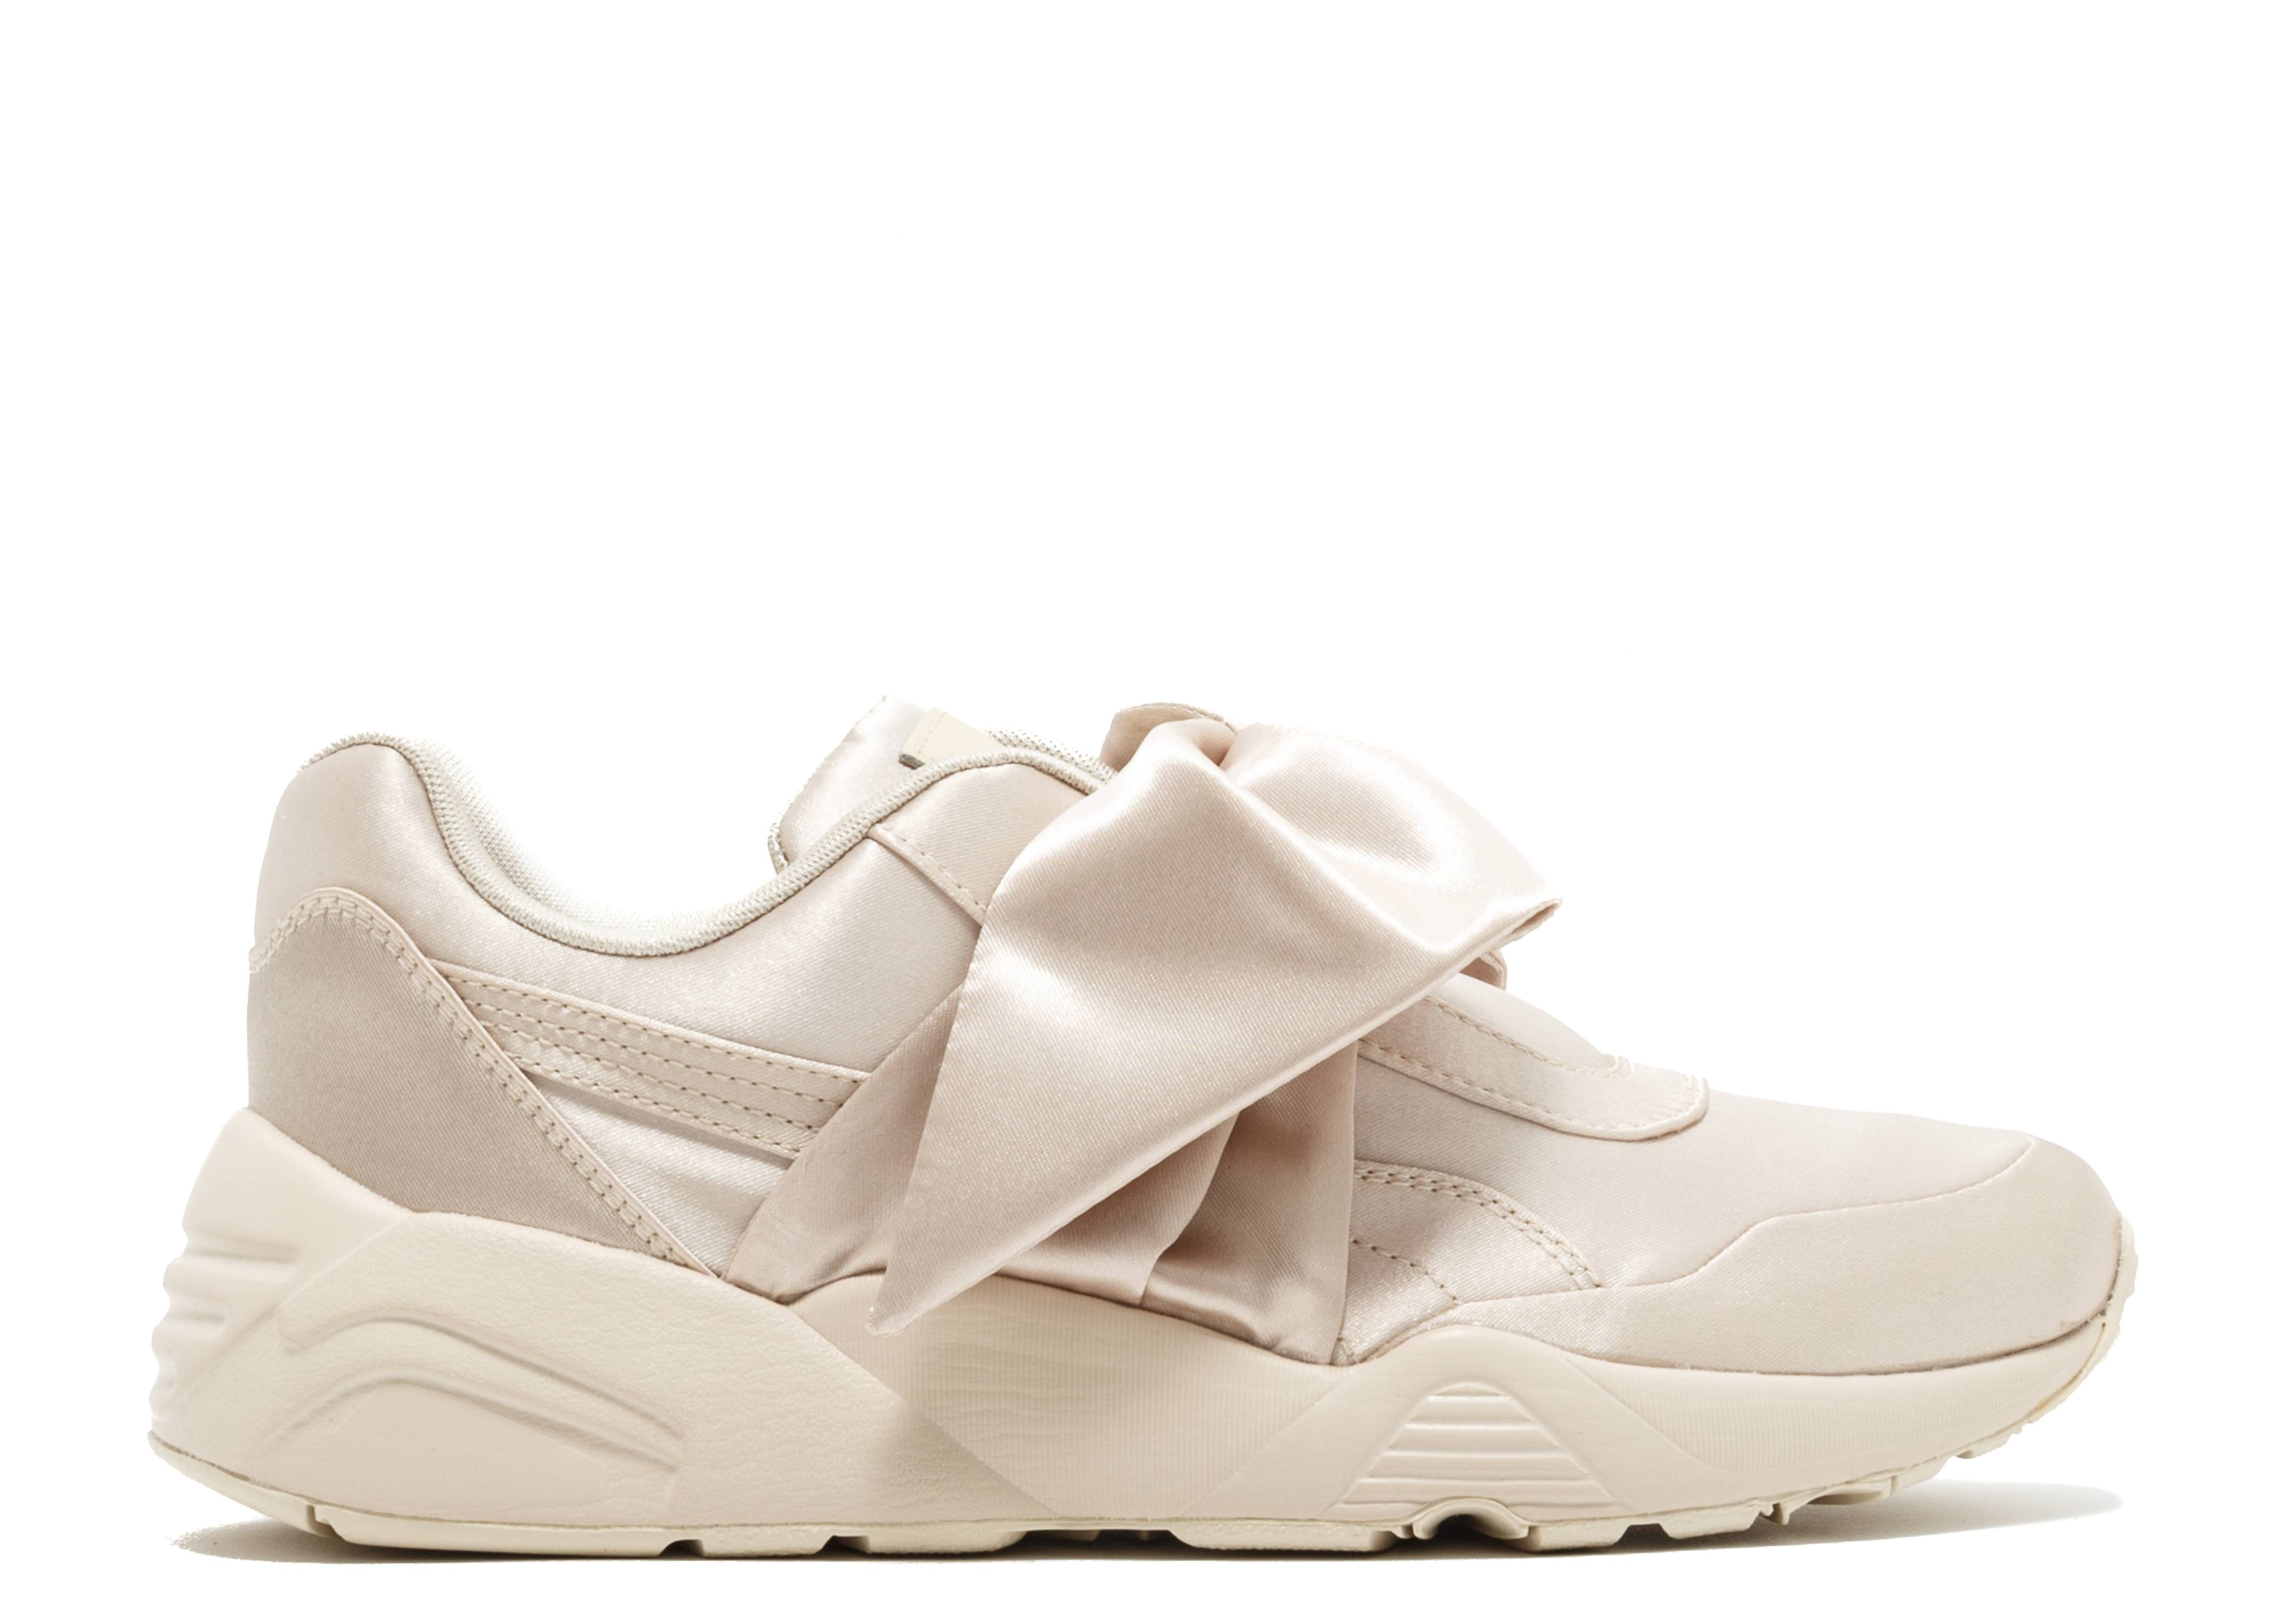 low priced b8b55 c3879 RIHANNA X PUMA FENTY BOW TRINOMIC